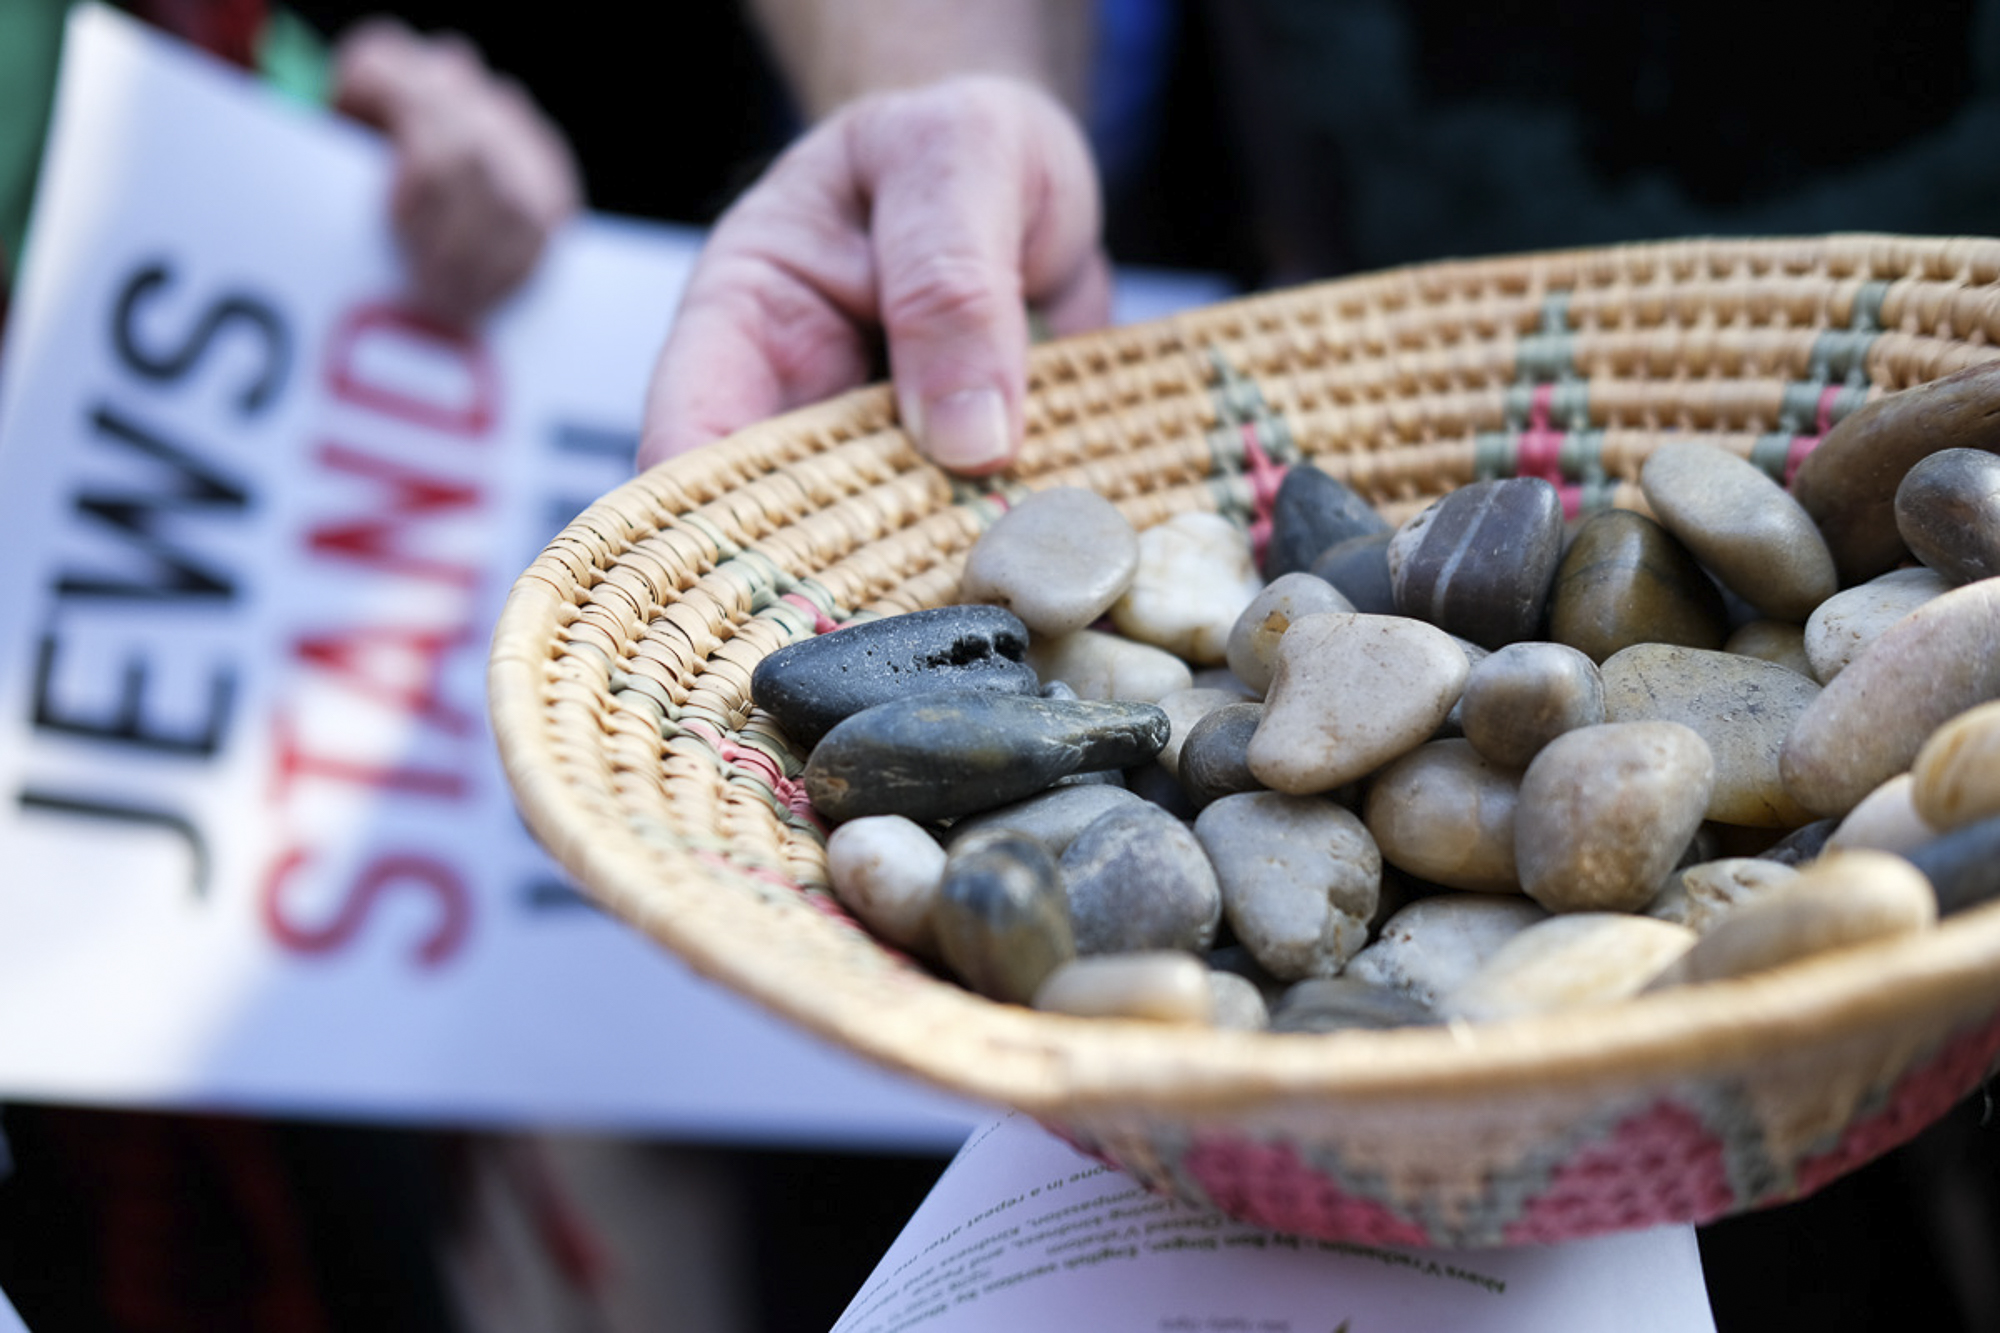 Stones were passed out during the vigil. Each stone would be placed to represent a Palestinian that was killed during the Great March of Return in Santa Monica, California on May 18, 2018. (Jayrol San Jose/Corsair Contributor)